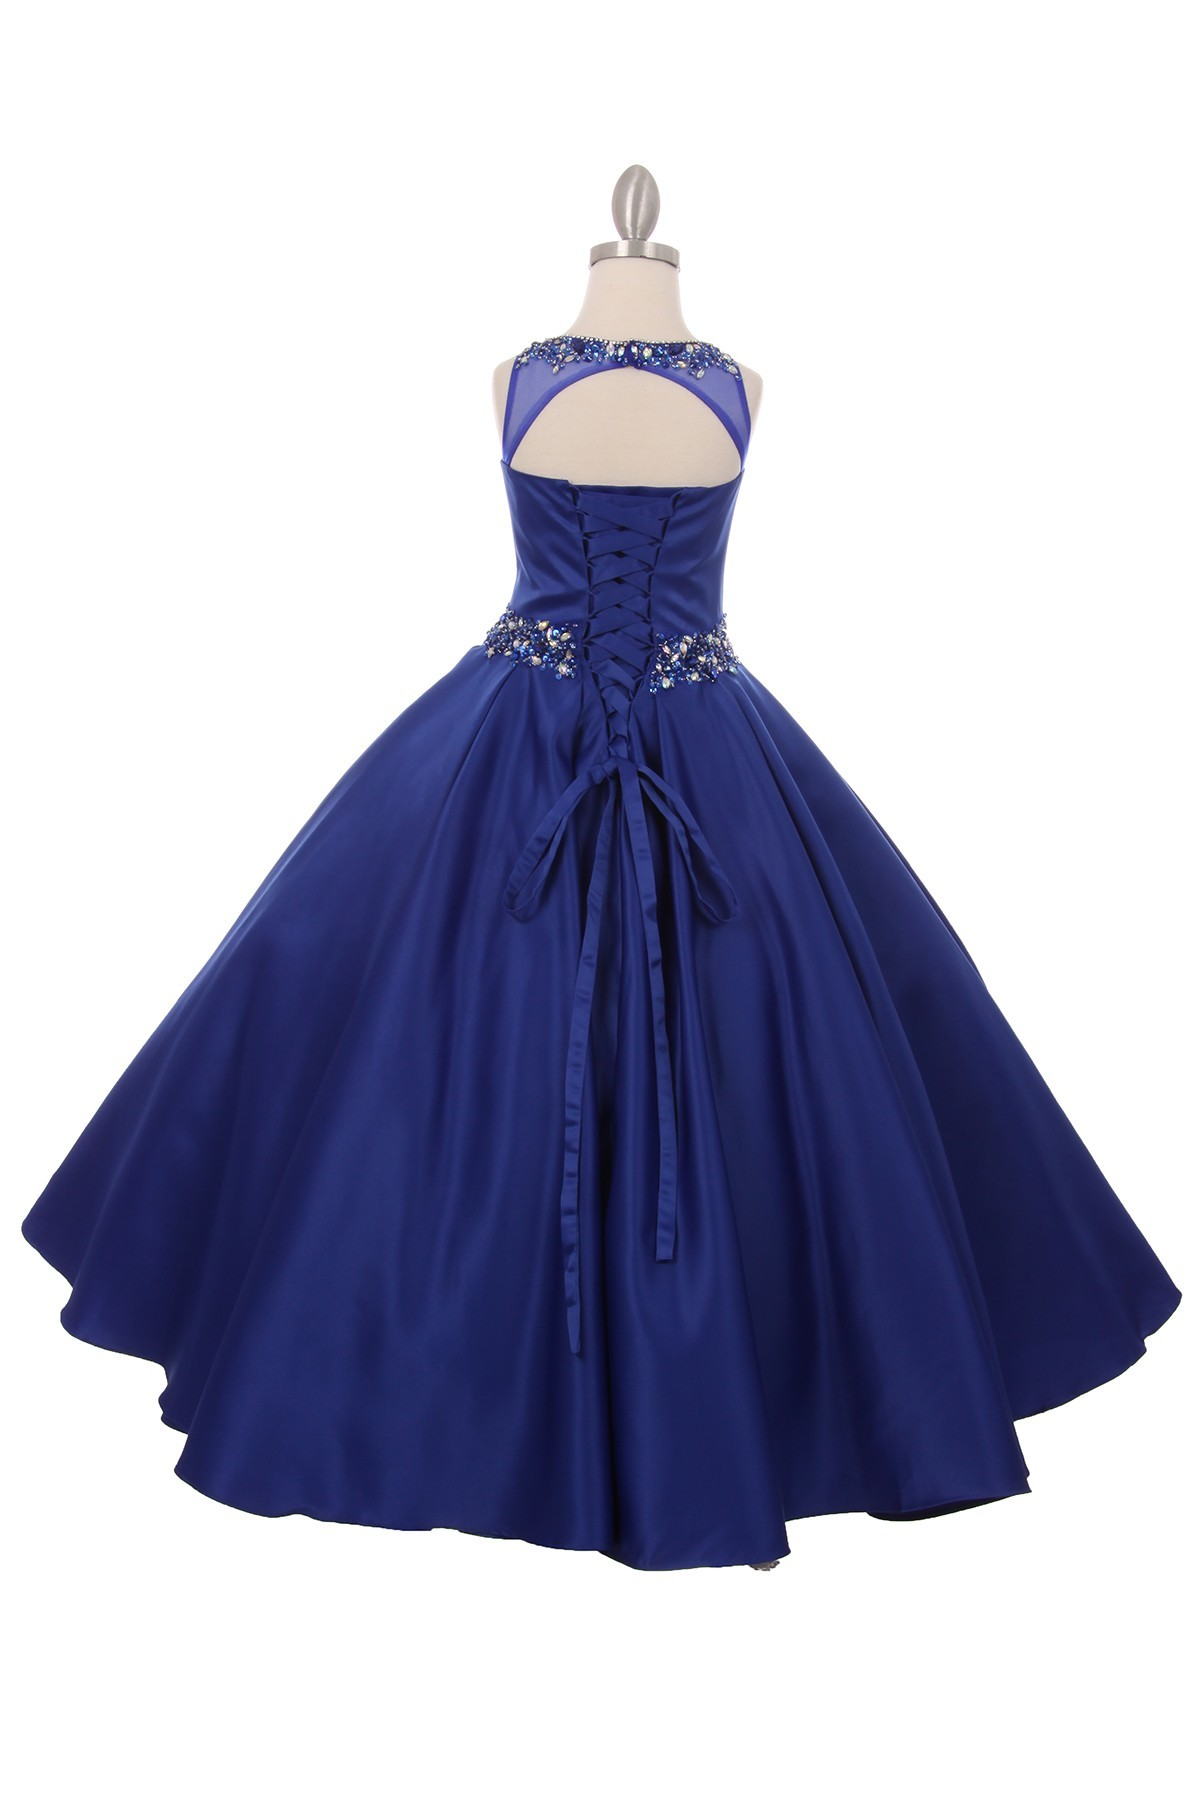 Royal Blue Long Girls Pageant Dresses